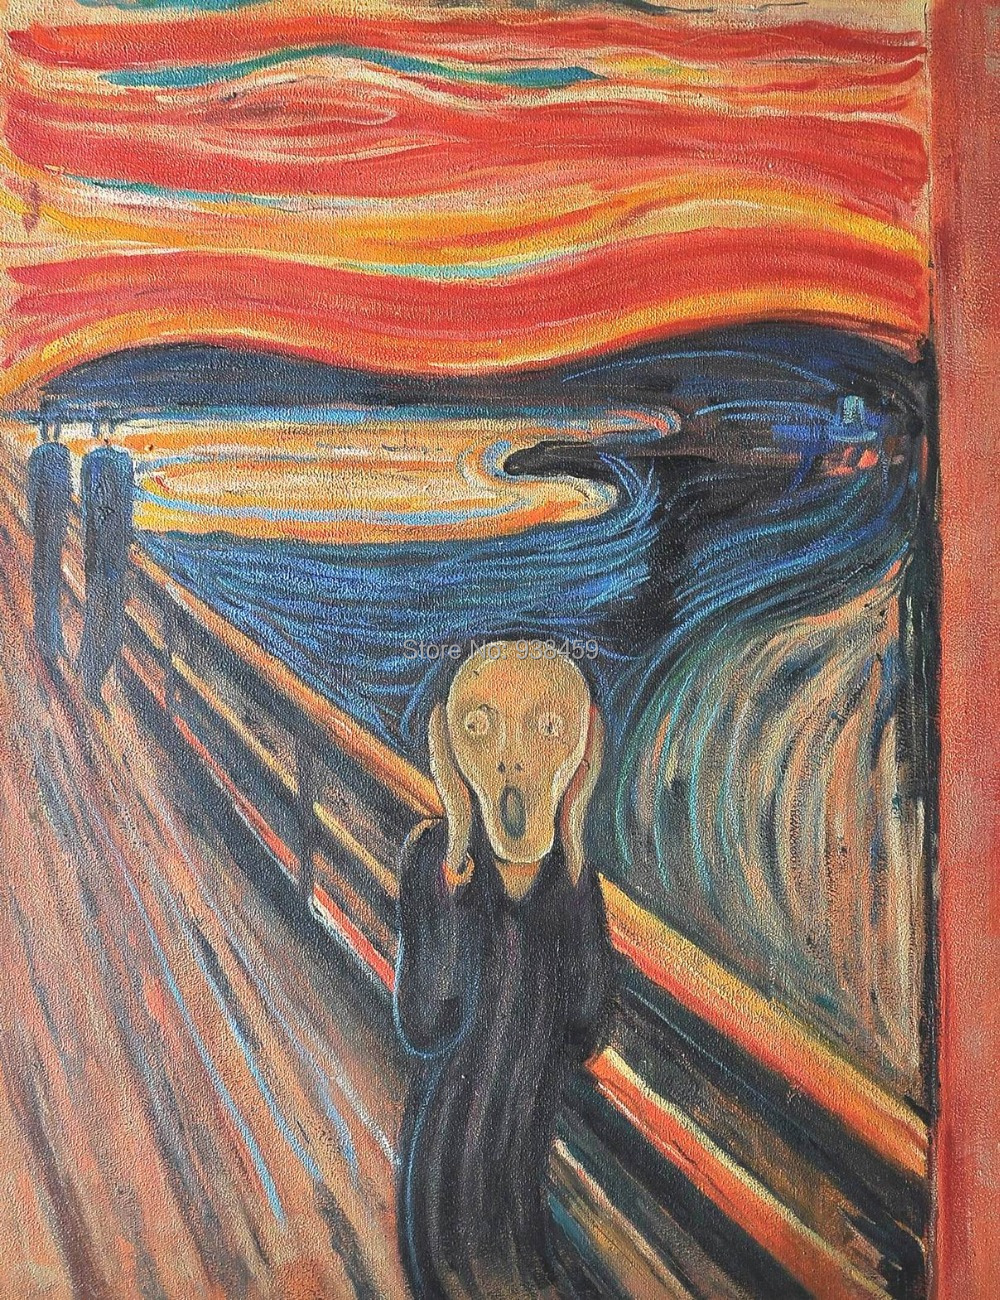 Who Painted The Famous The Scream